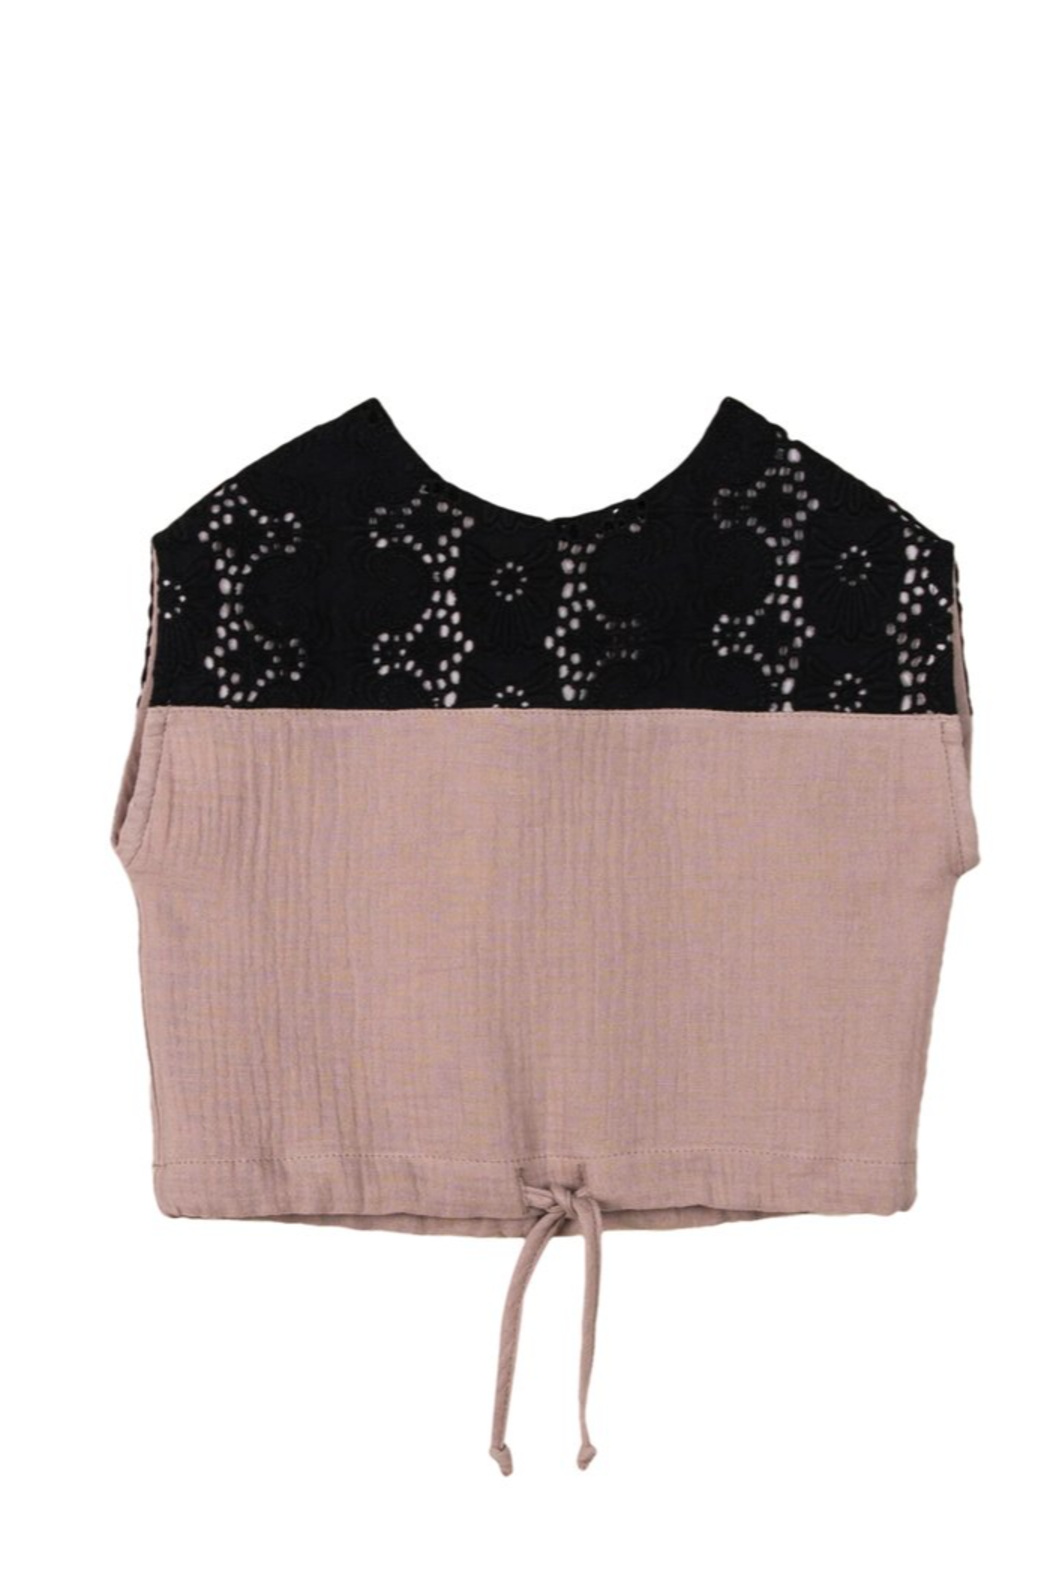 Popelin Cotton Top with Contrasting Embroidered Yoke For Infant Toddler Girls - Main Image